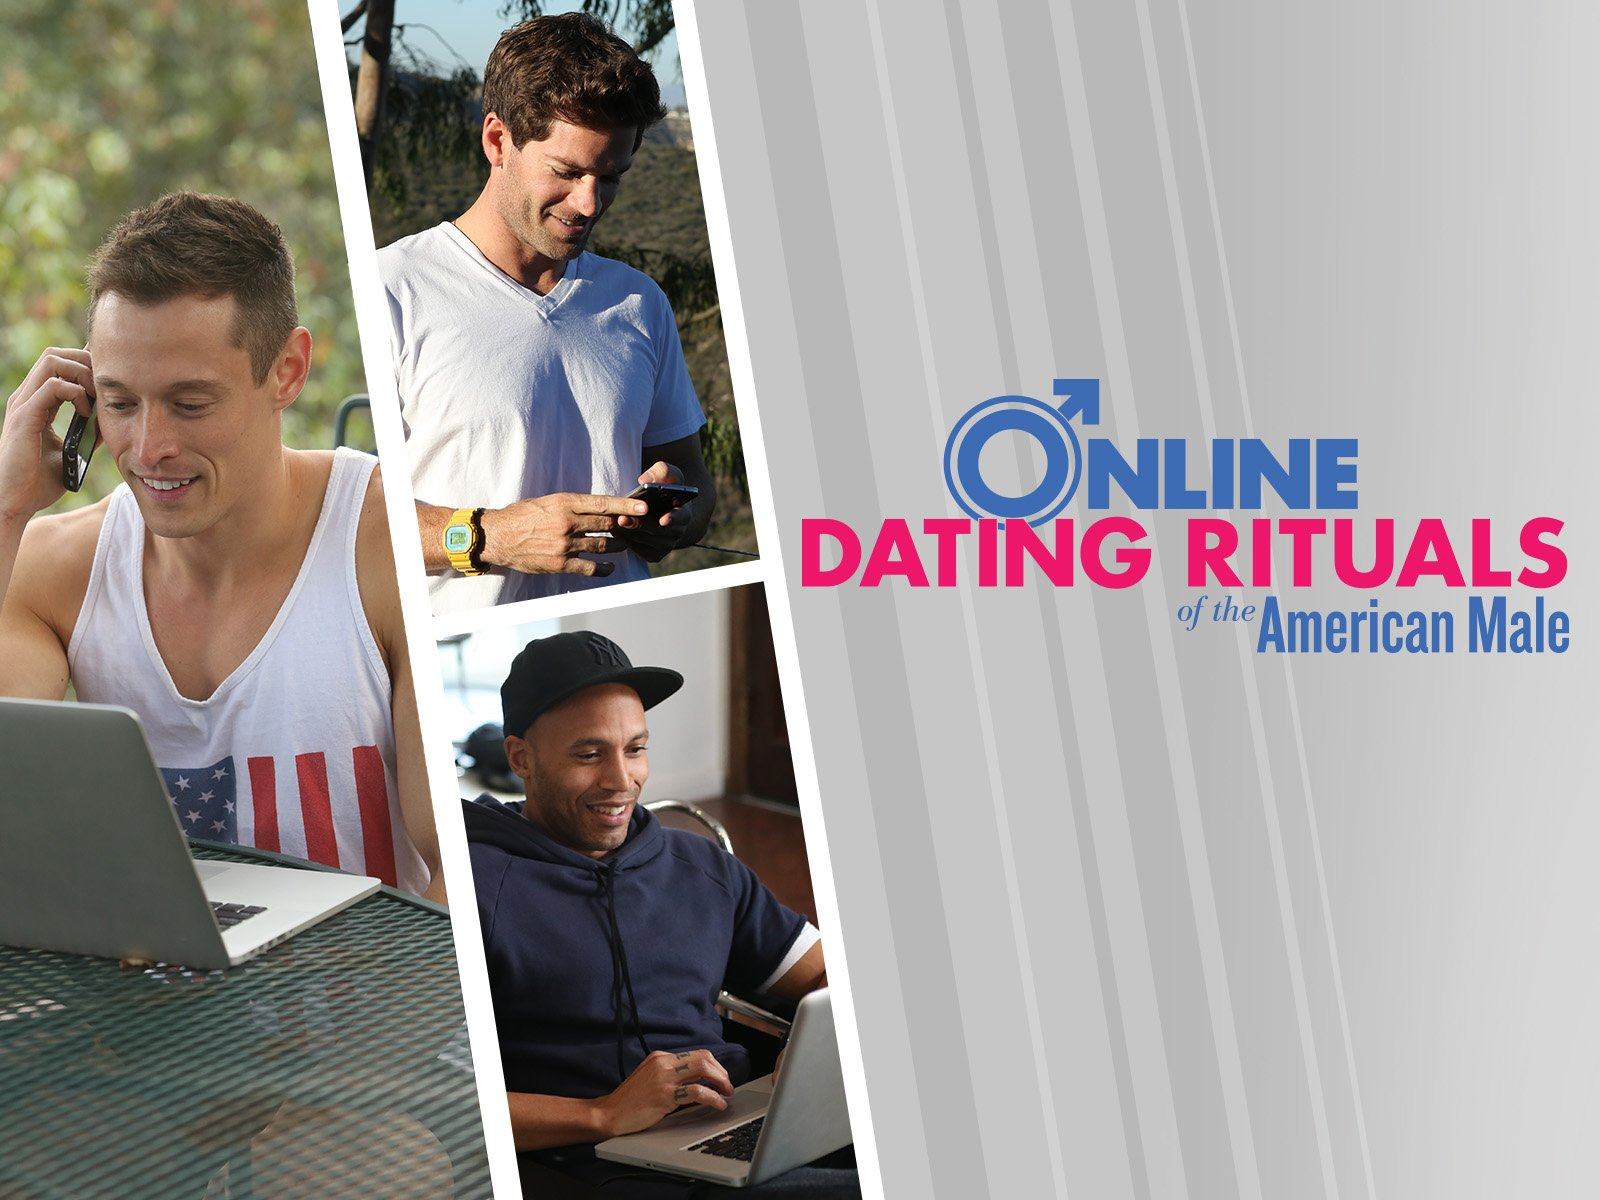 Online hookup rituals of american male cast